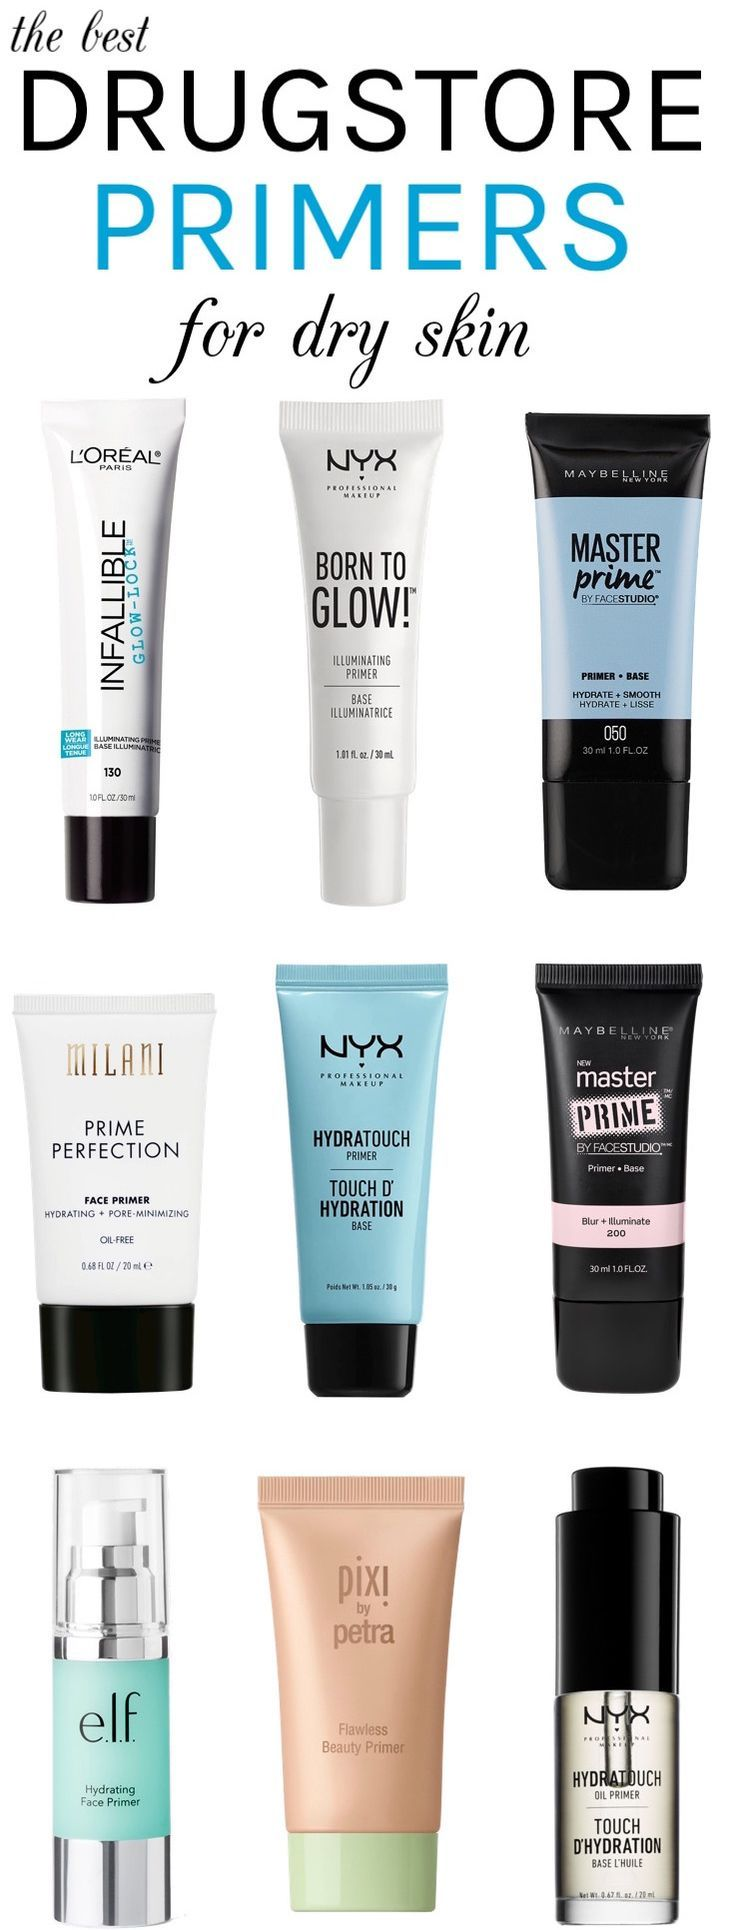 The Best Drugstore Primers For Dry Skin Primer For Dry Skin Dry Skin Makeup Best Drugstore Primer